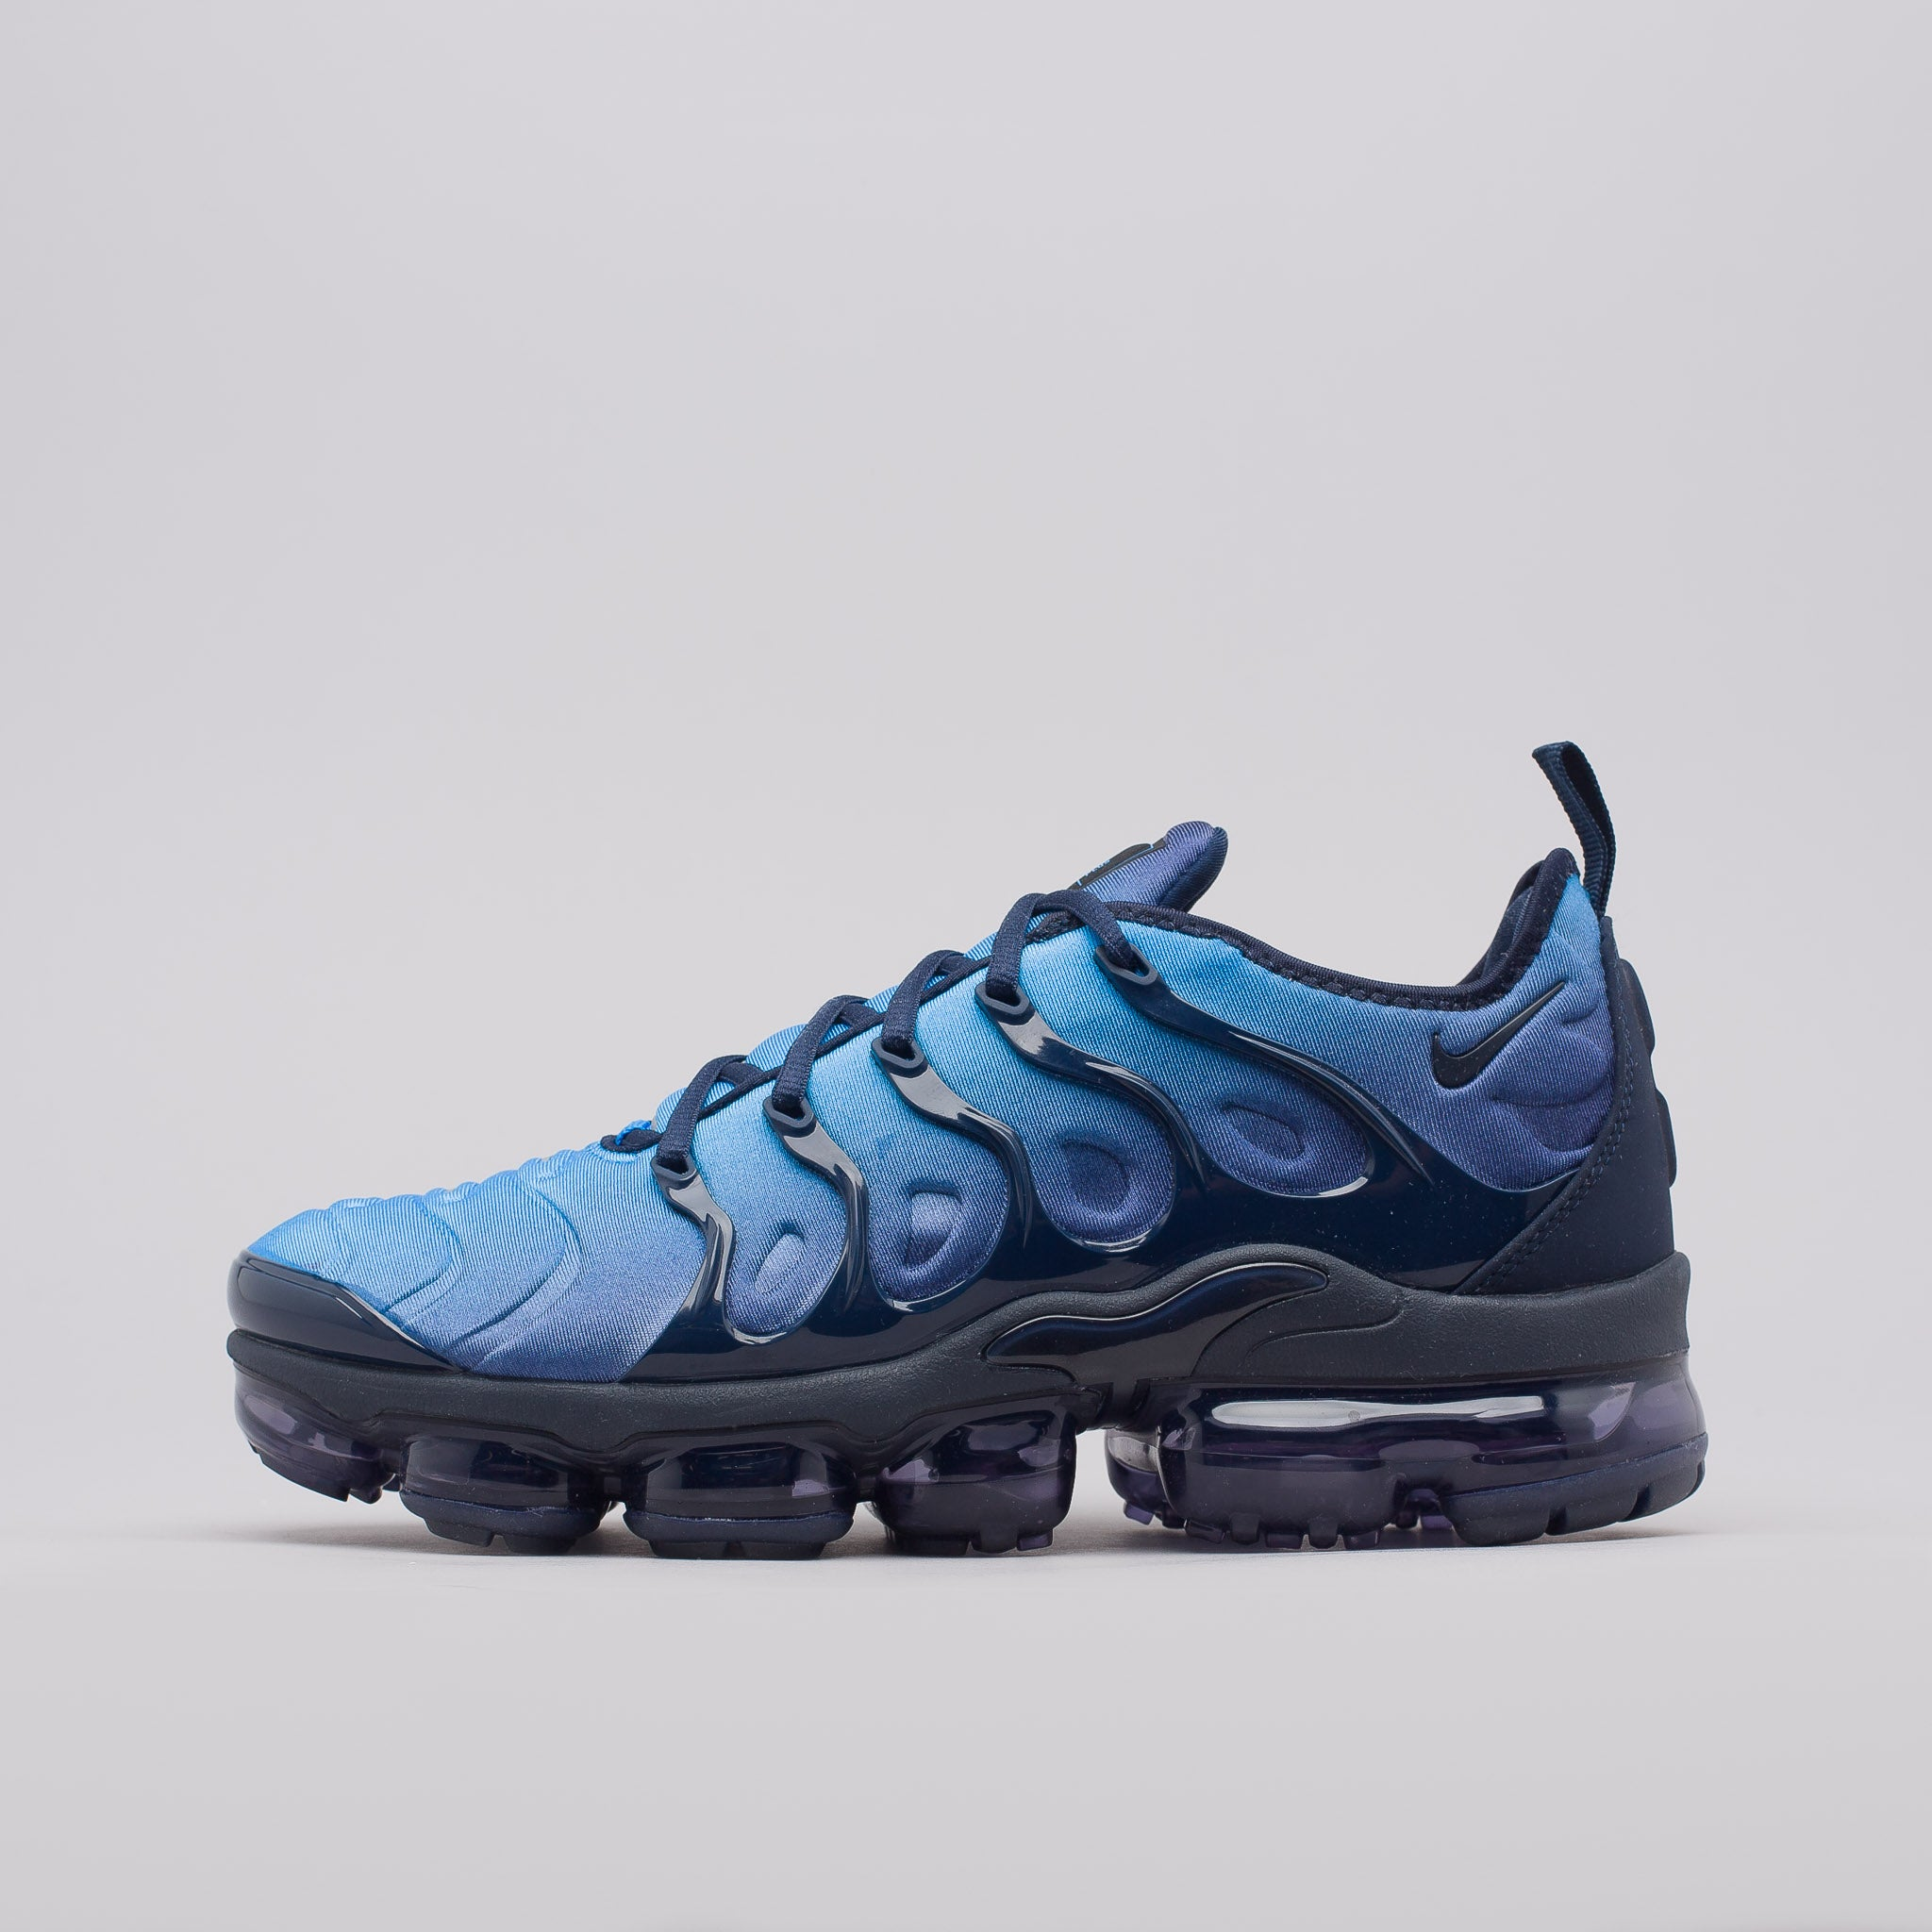 Nike Air Vapormax Plus Obsidian / Photo Blue / Black